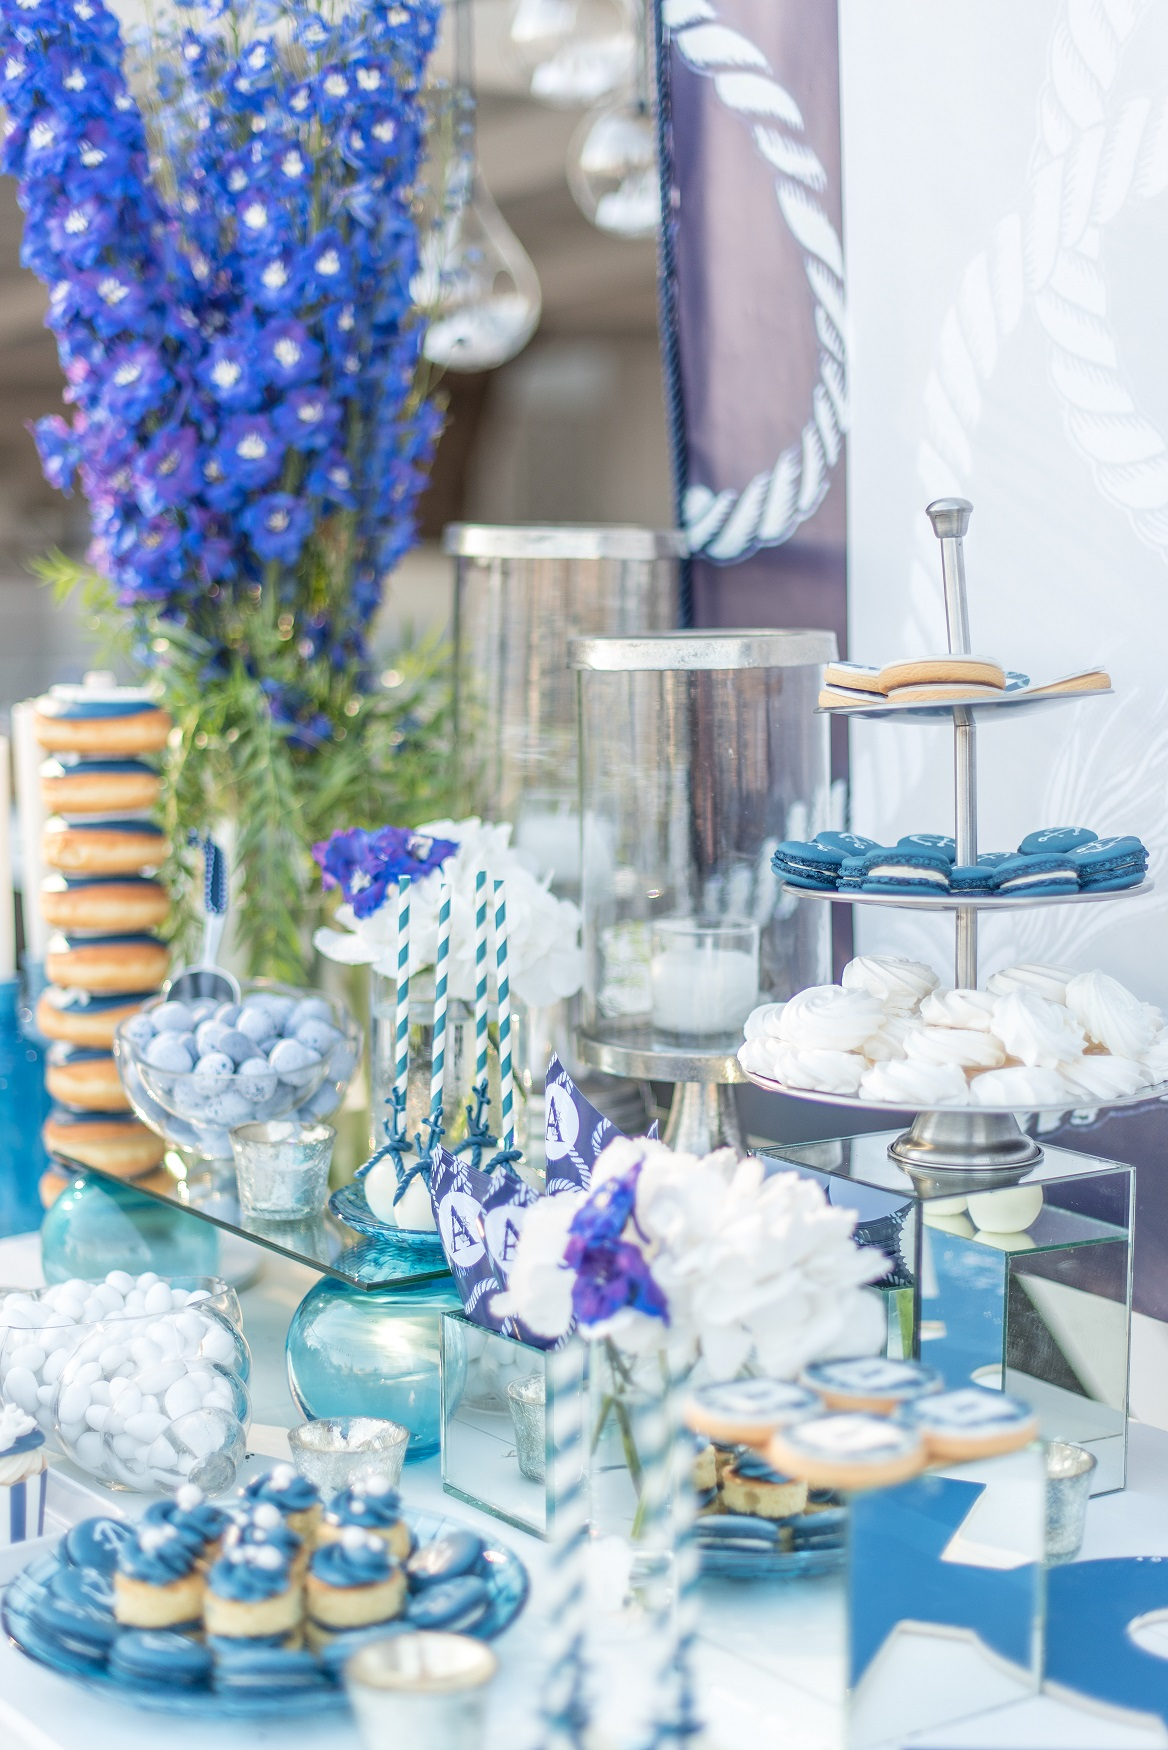 Blue Inspired Christening in Skiathos by Tsveta Christou